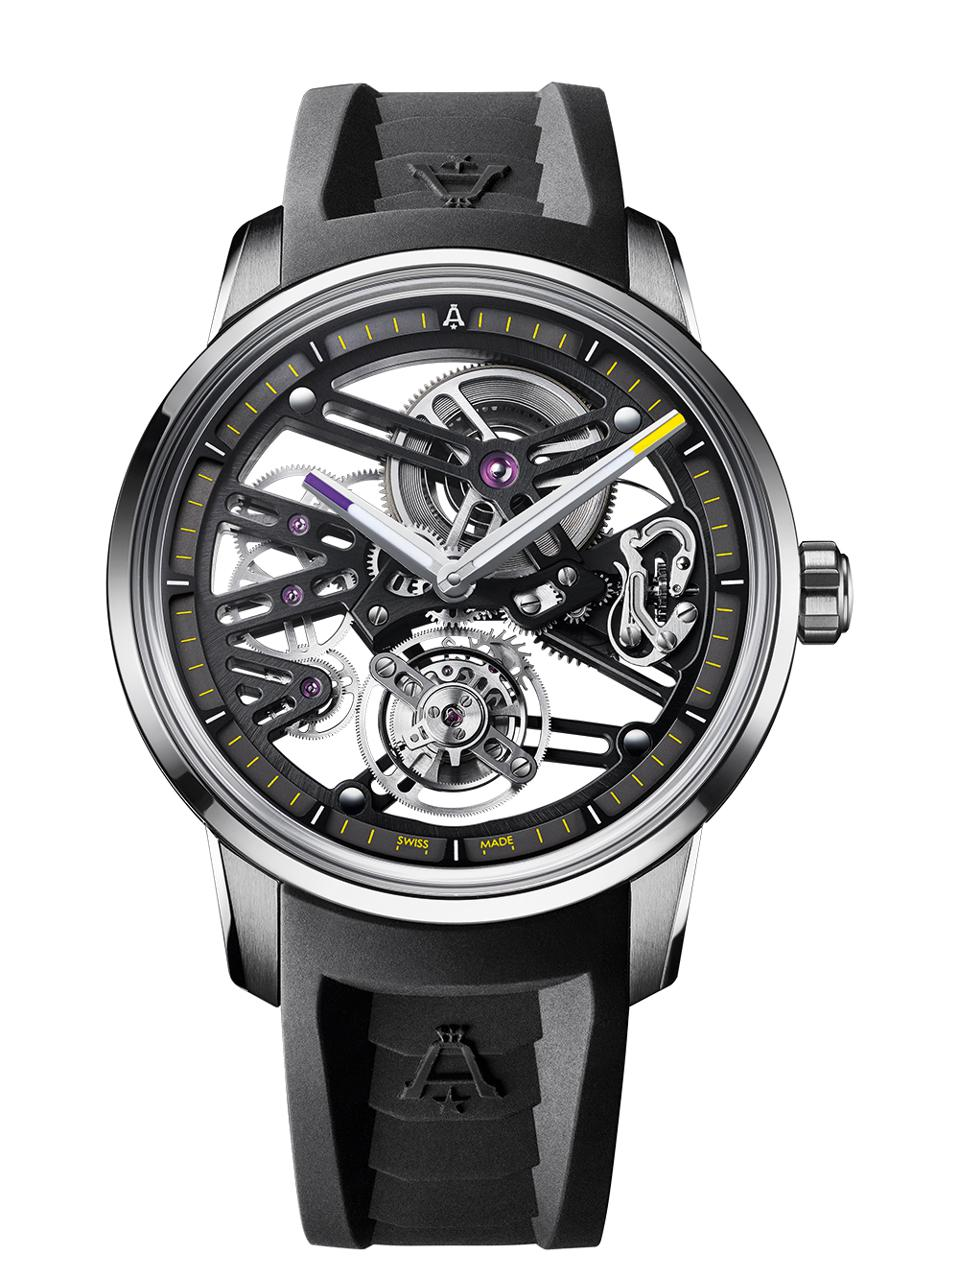 The Justin Jefferson Angelus tourbillon, with purple and yellow tips on the hands, reflecting the team colors.